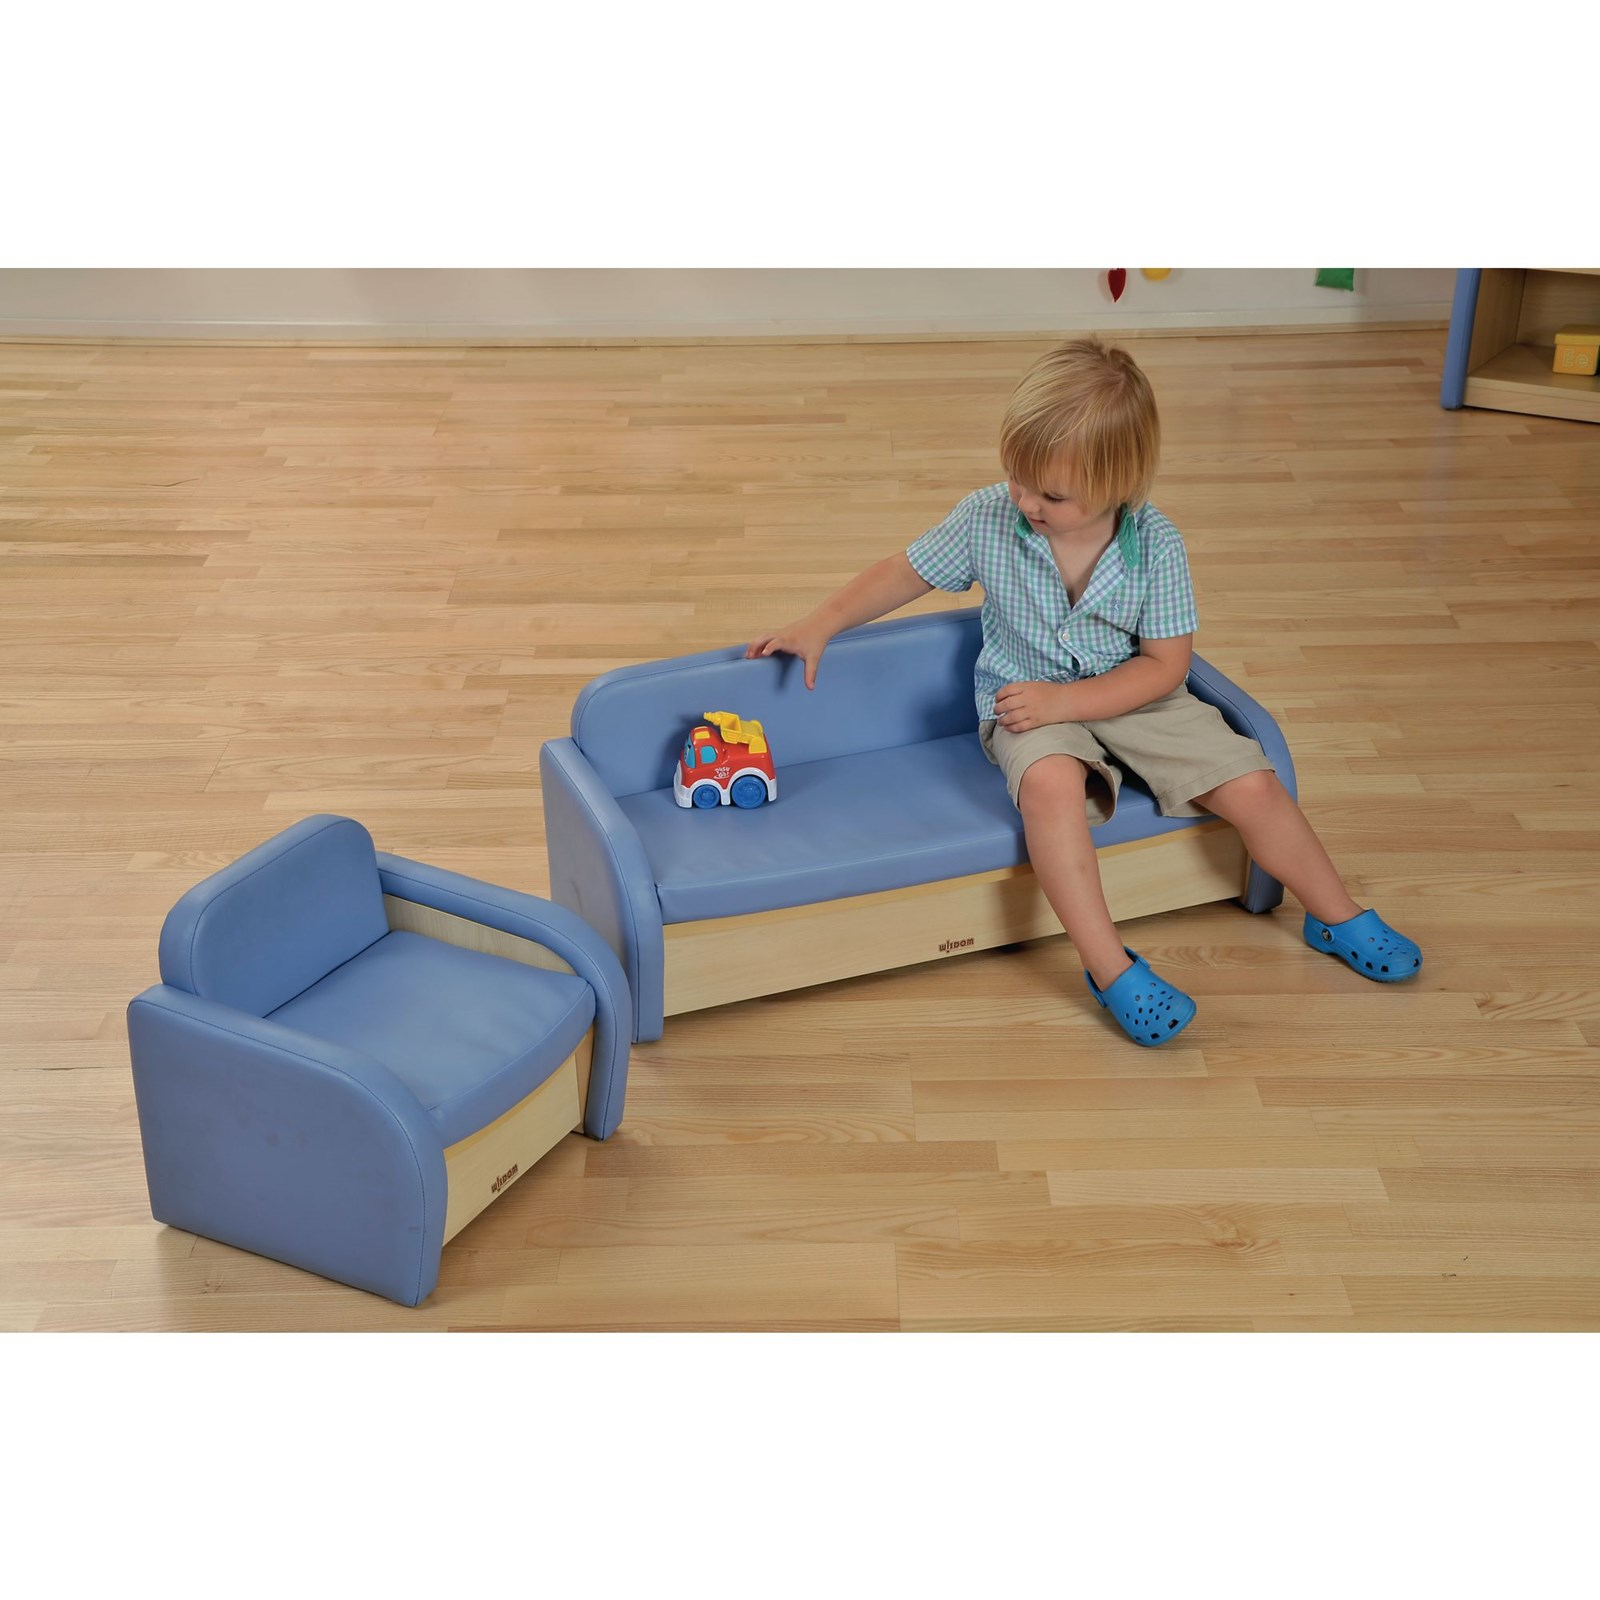 safespace toddler sofa - Toddler Sofa